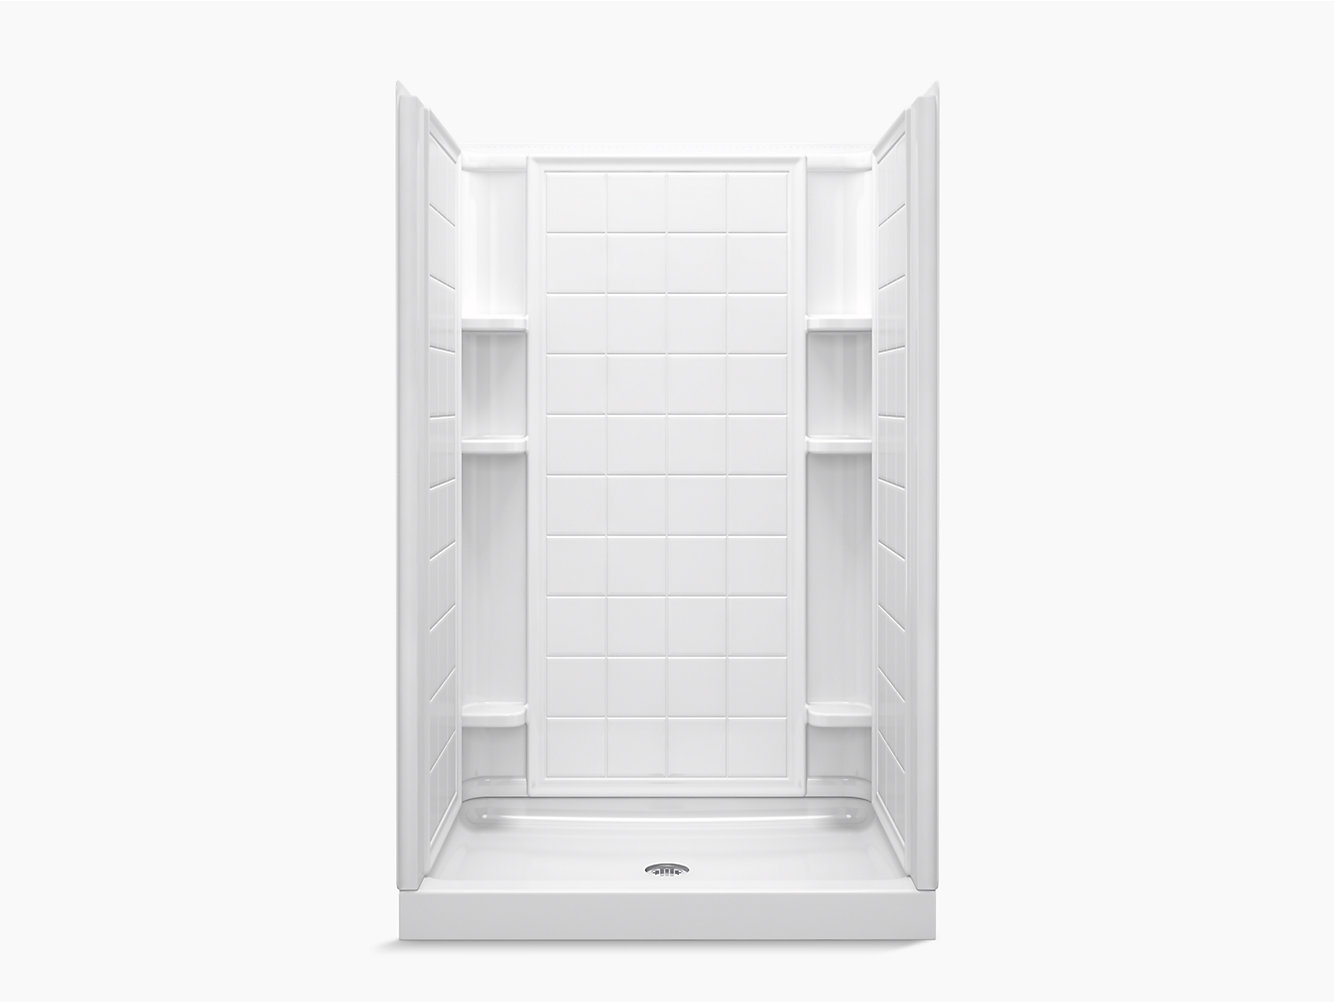 Ensemble 48 Series 7212 X 34 75 3 4 Tile Alcove Shower 72120100 Sterling